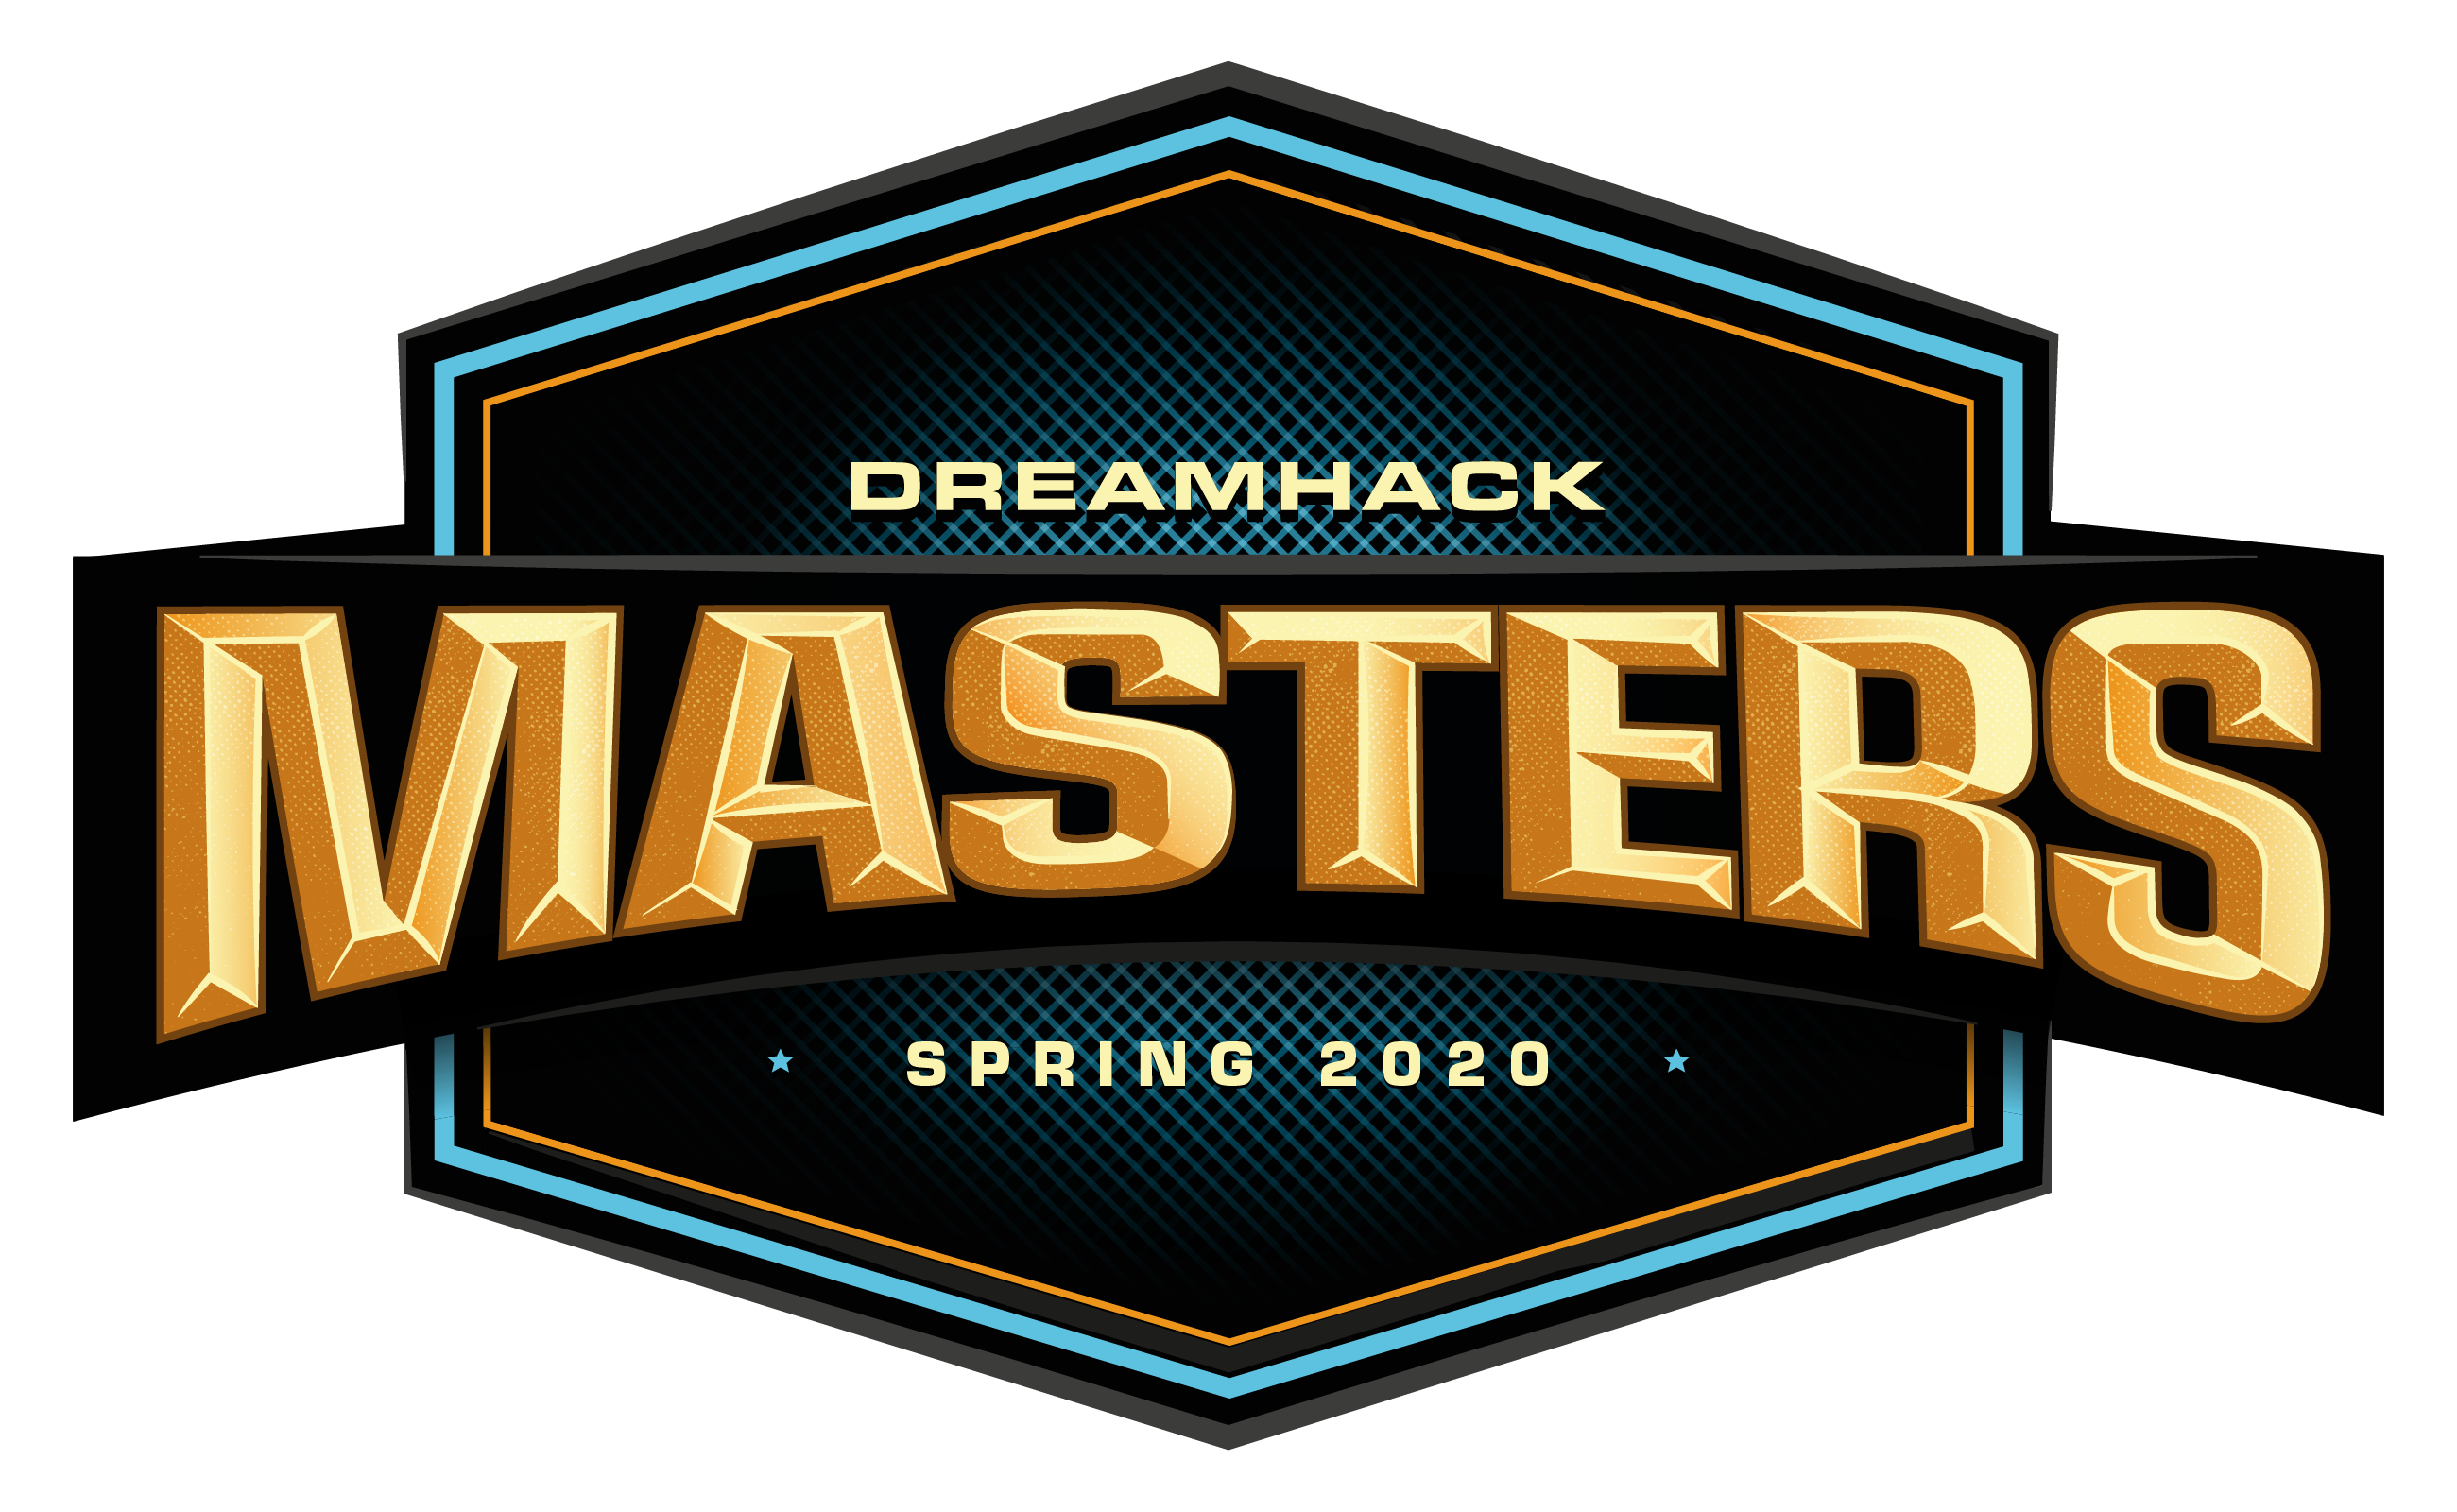 DreamHack Masters European Spring 2020 Tournament